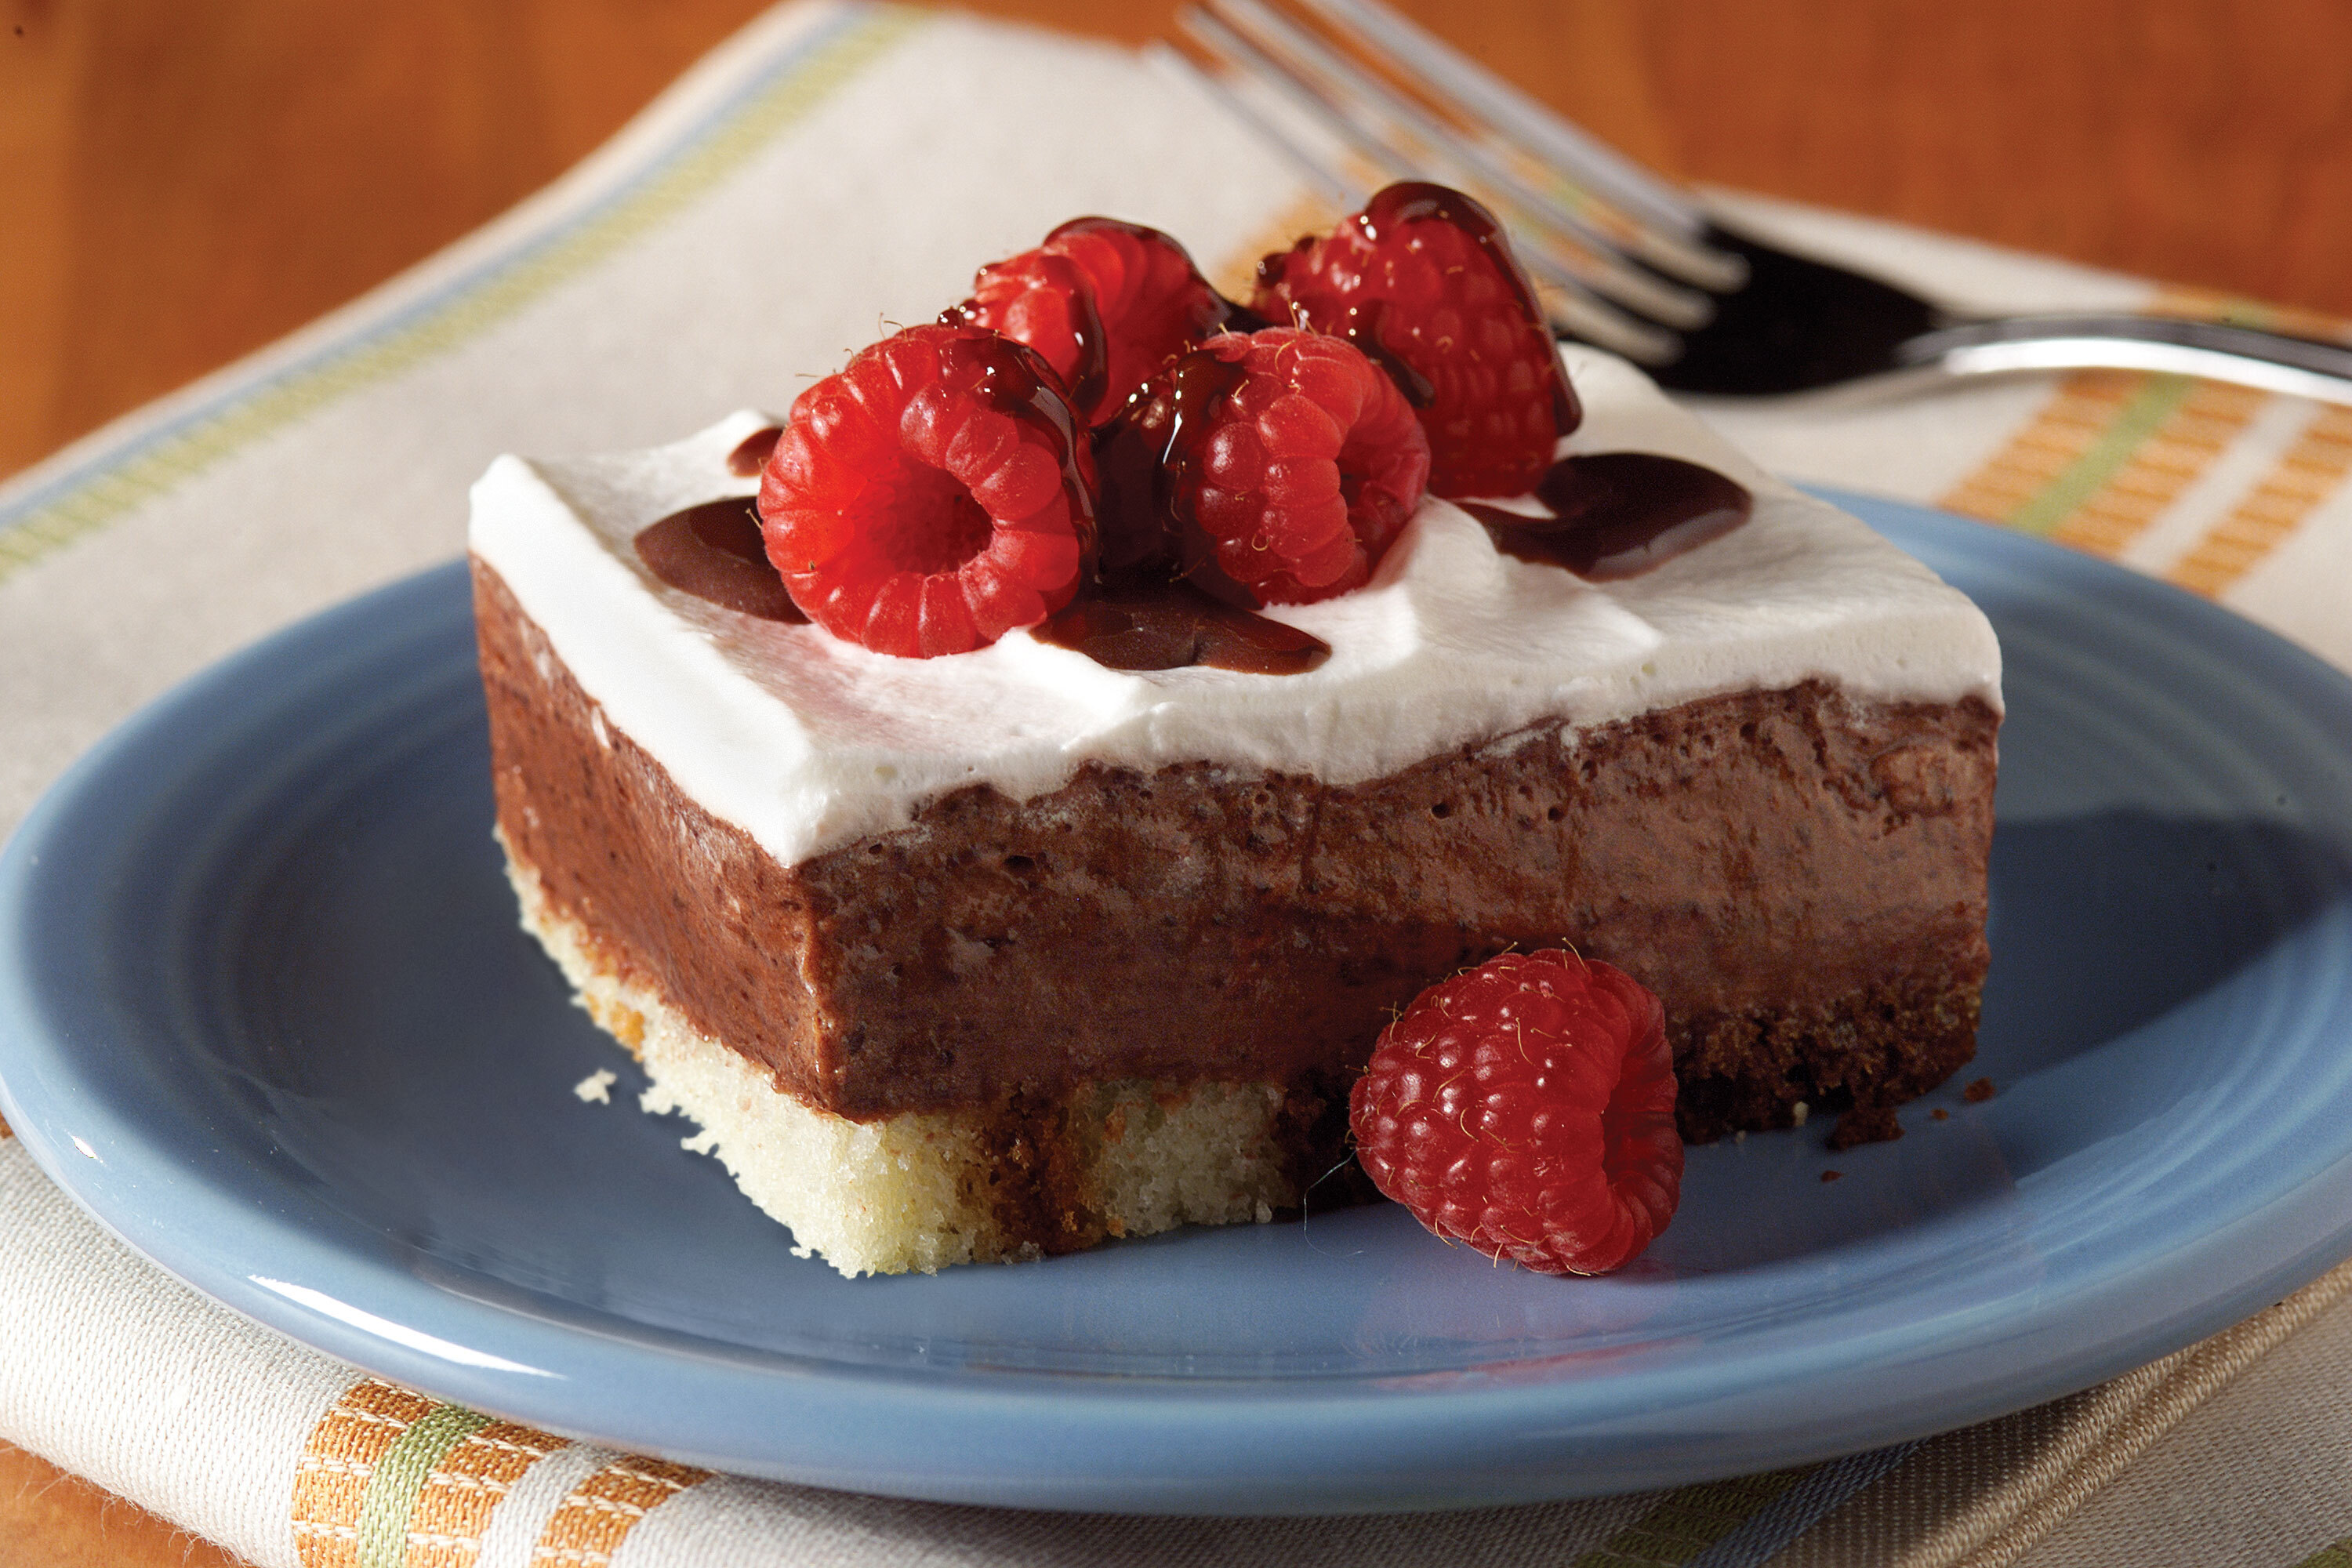 Low-Fat Chocolate-Berry Dessert